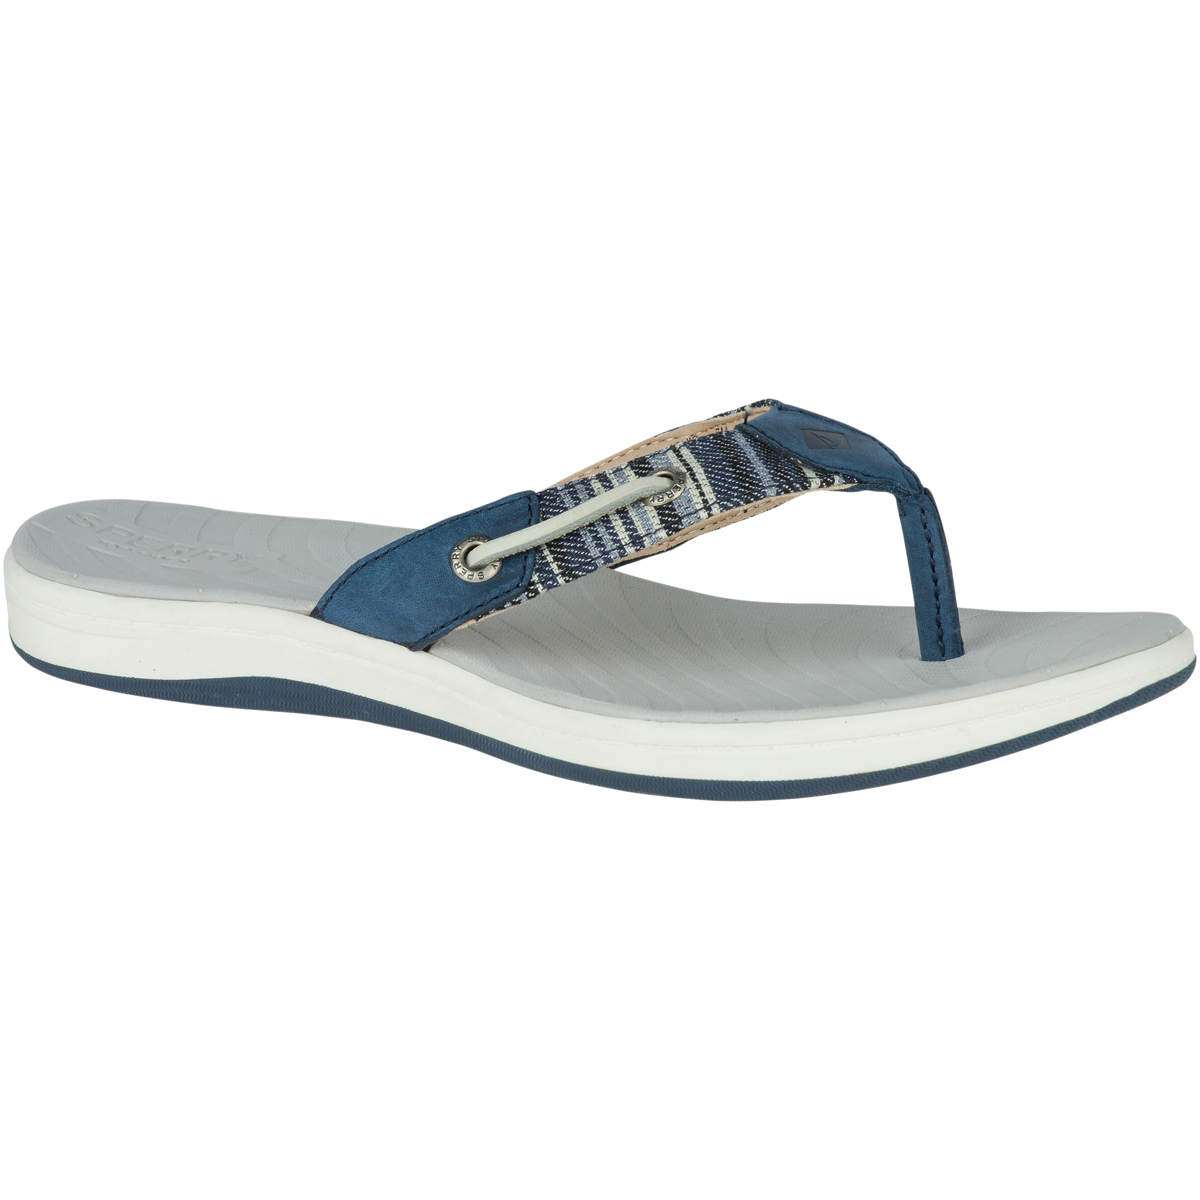 SPERRY WOMEN'S SEABROOK SURF FLIP-FLOP (STS98722)